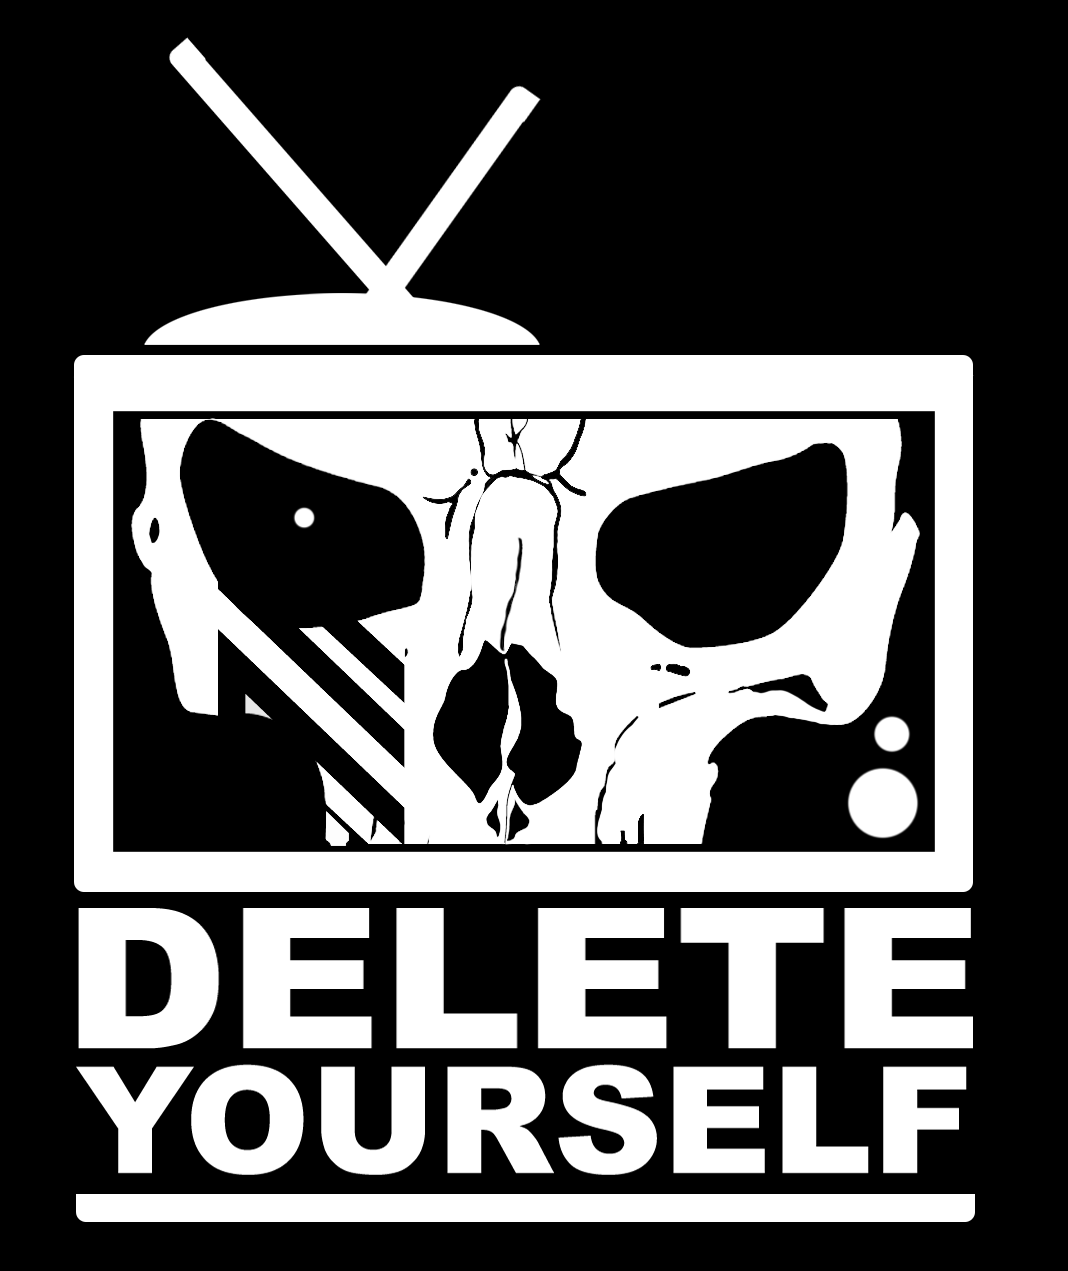 Delete Yourself